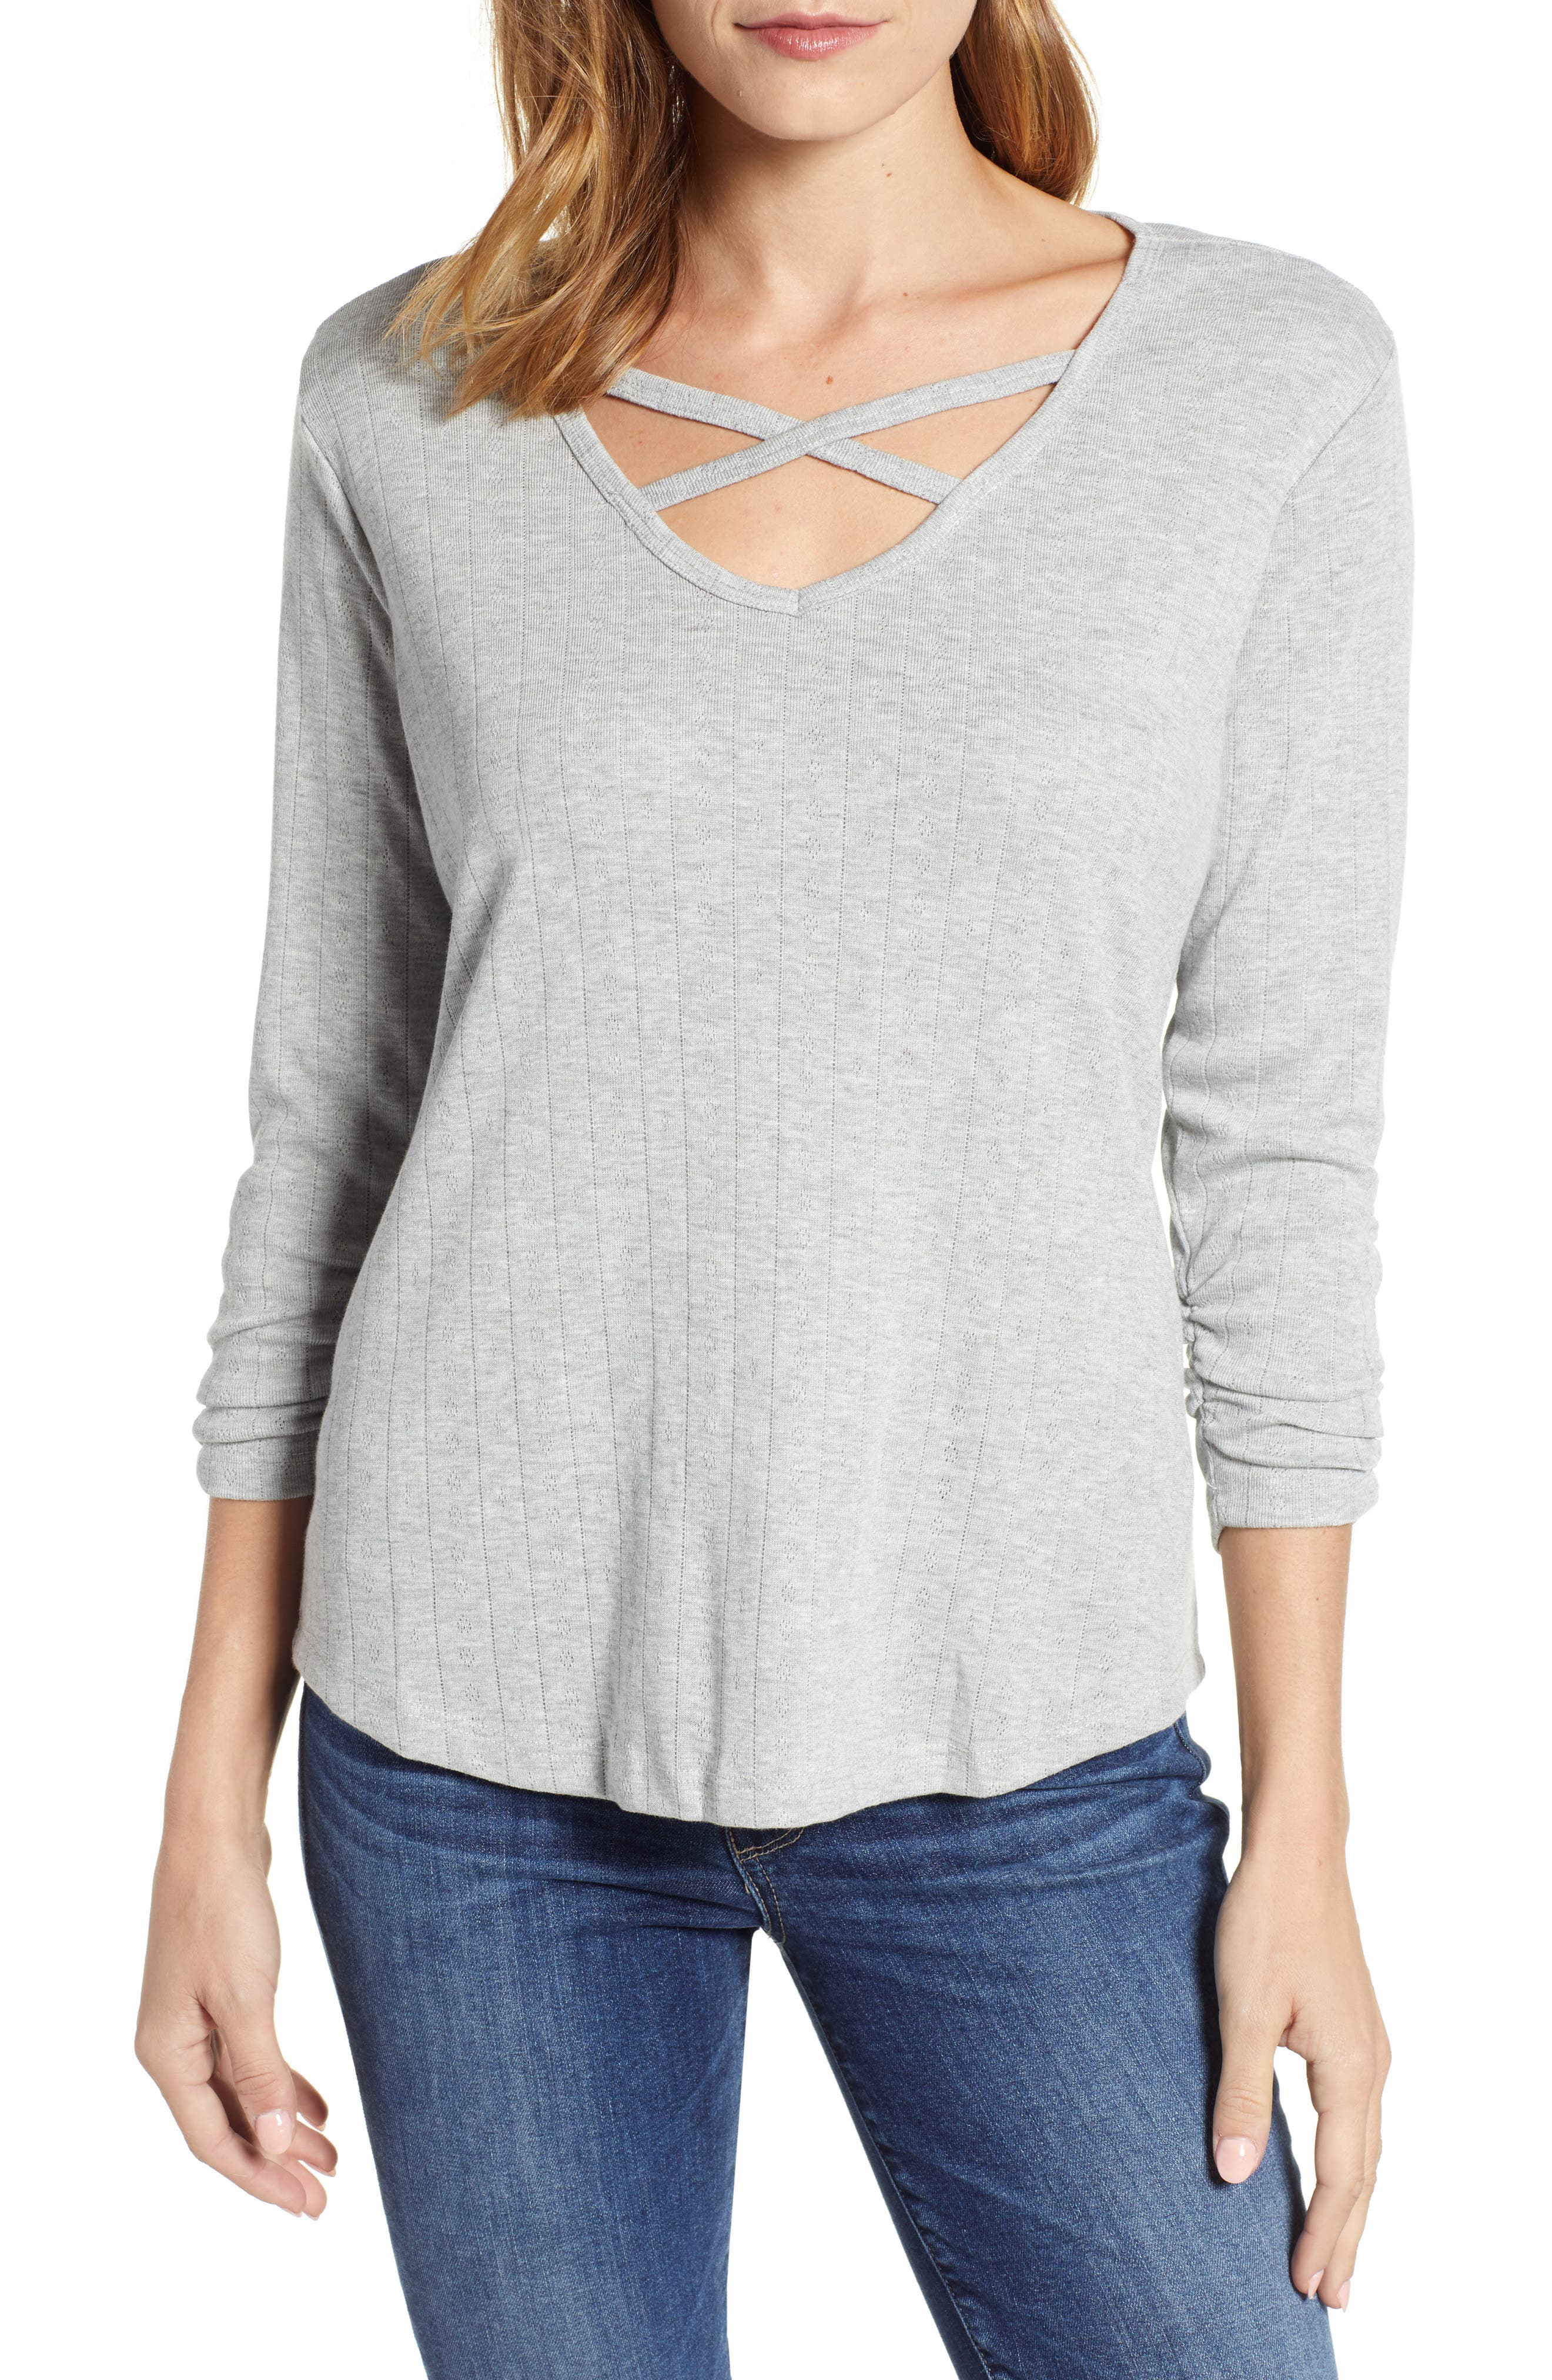 Pointelle Knit Top,                         Main,                         color, LIGHT GREY